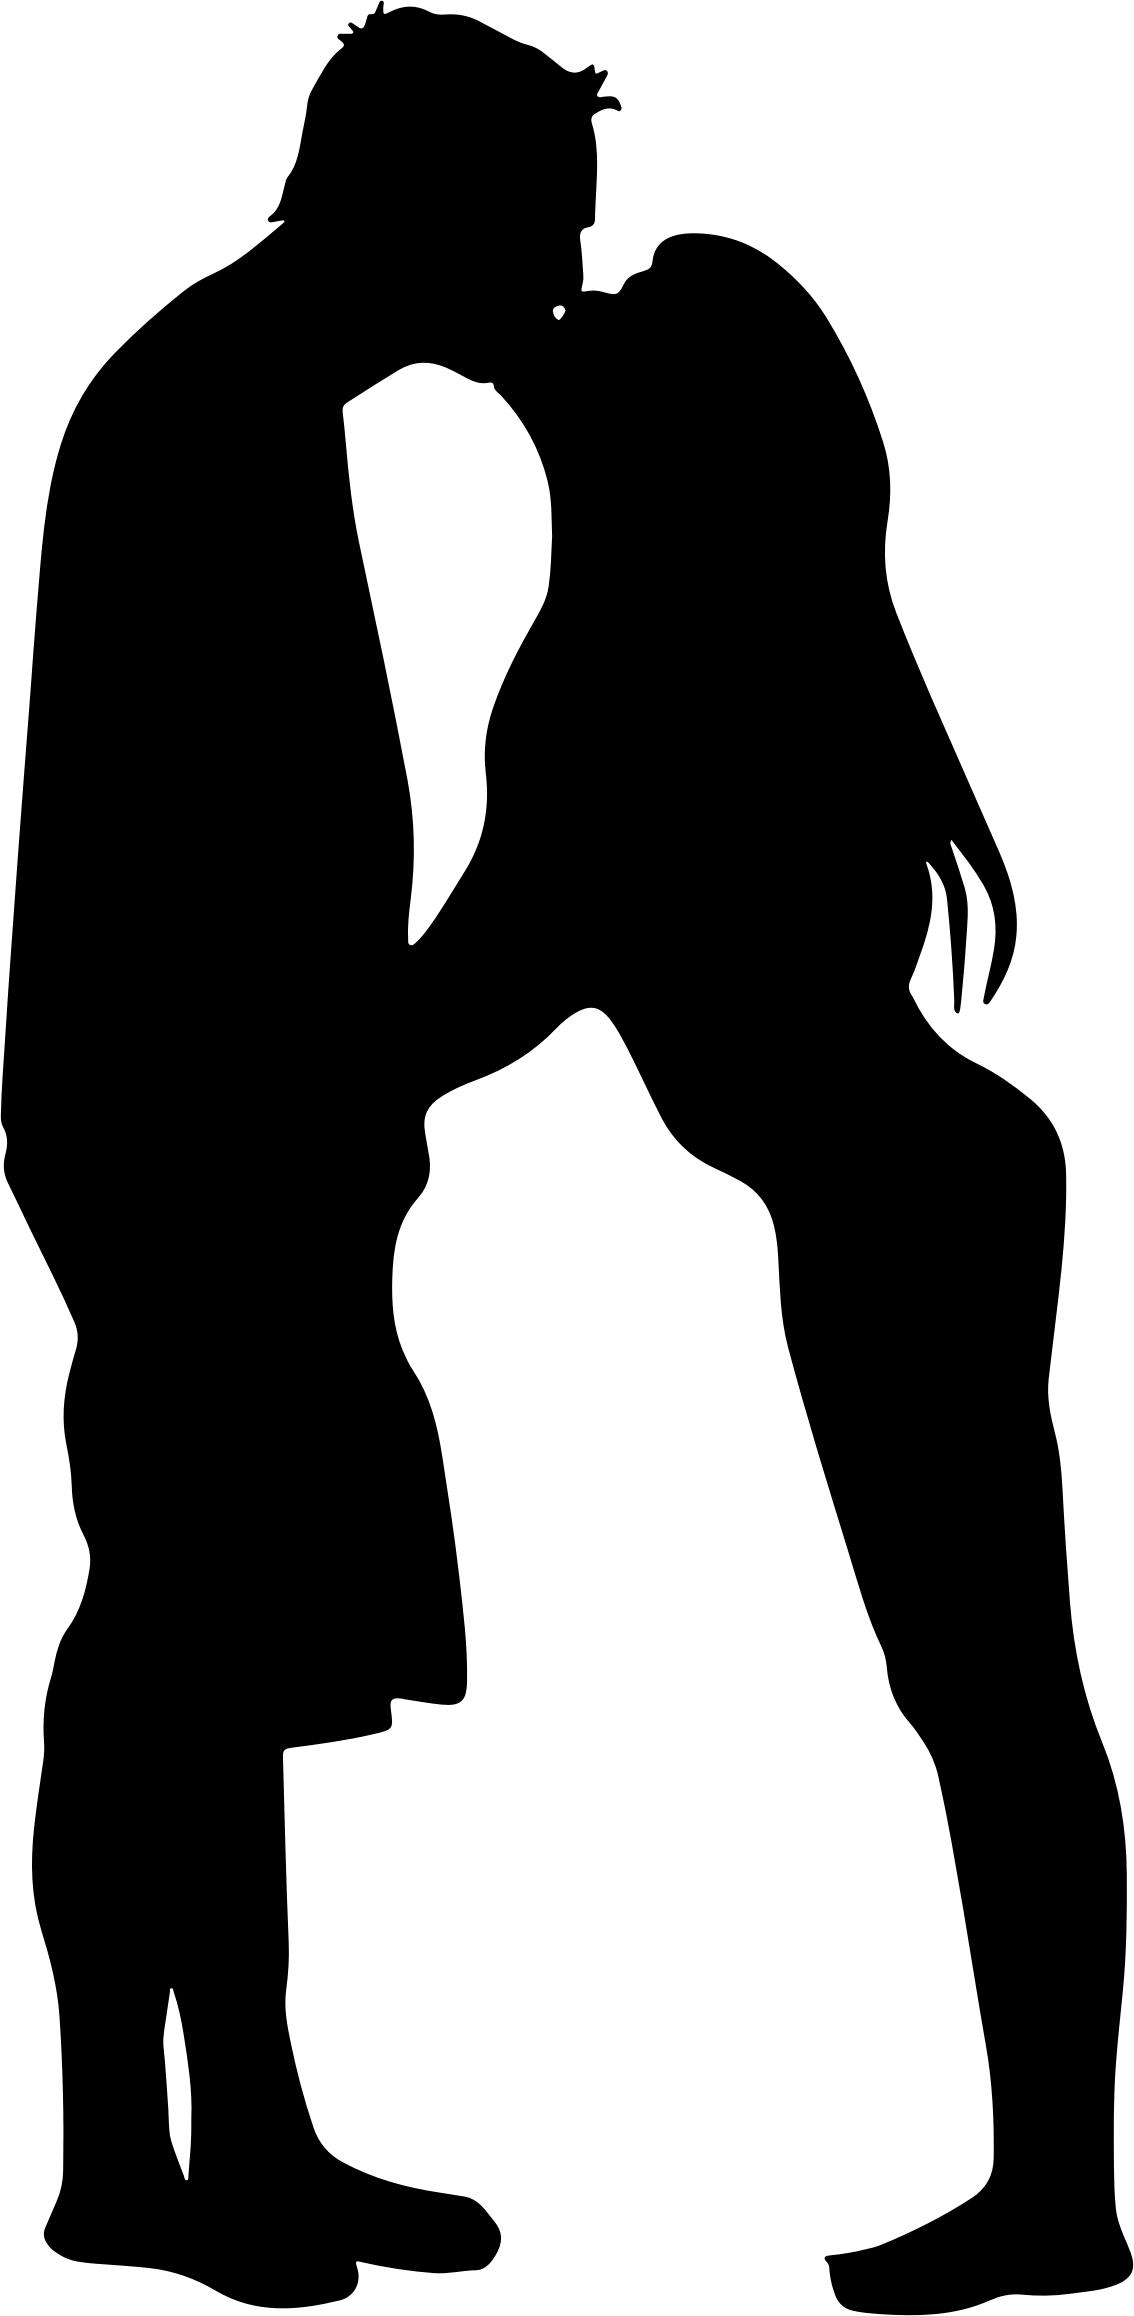 1134x2316 Couple Kissing Silhouette Icons Png